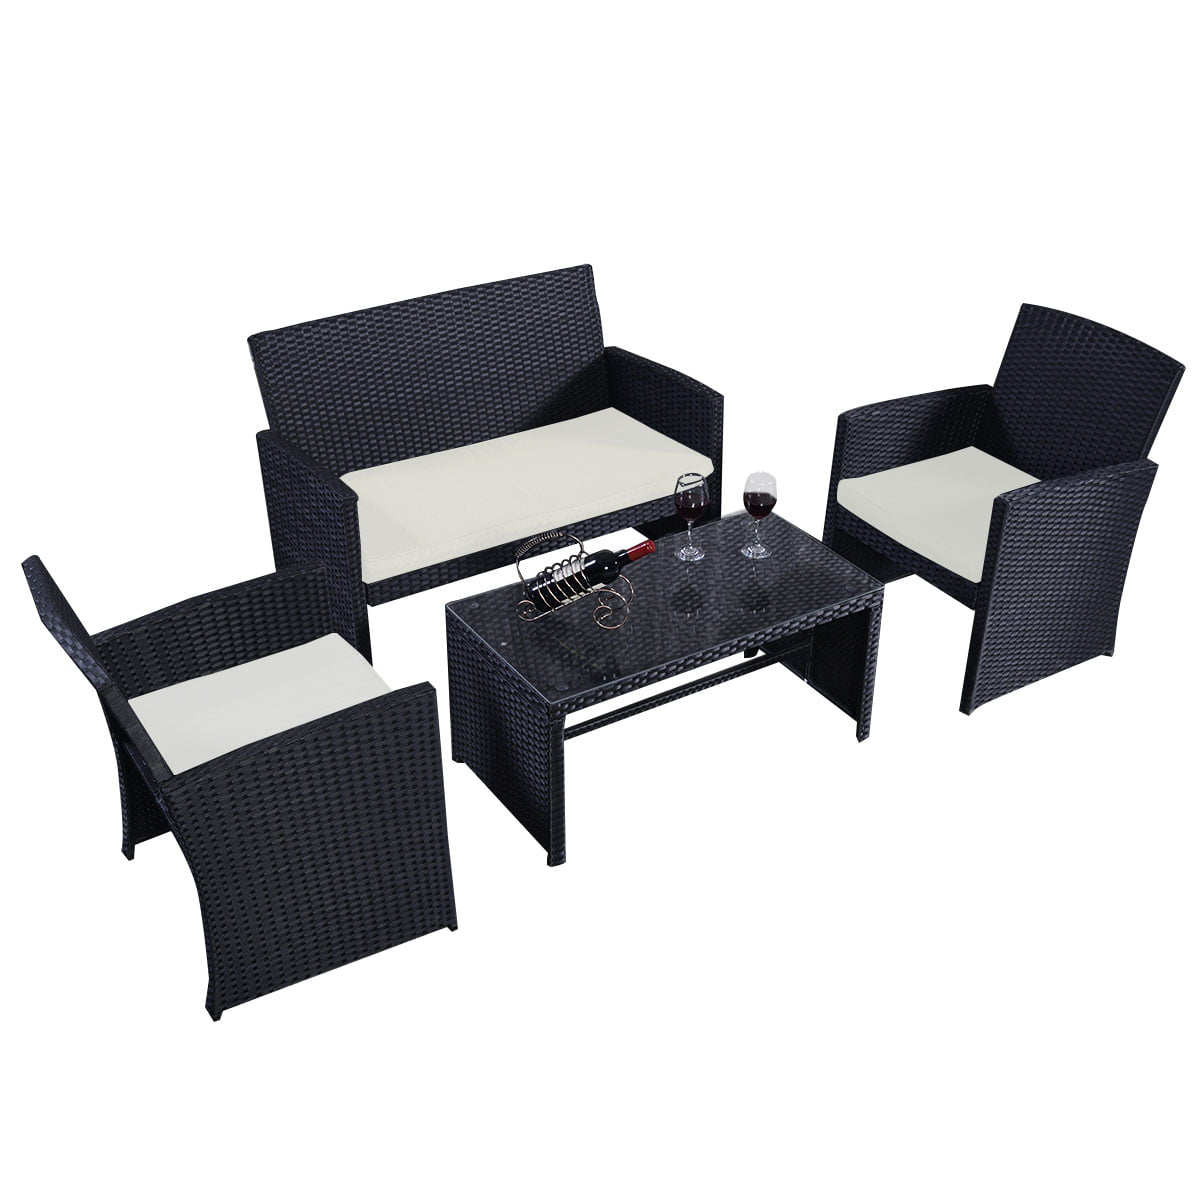 costway 4 pc rattan patio furniture set garden lawn sofa wicker cushioned seat black walmartcom